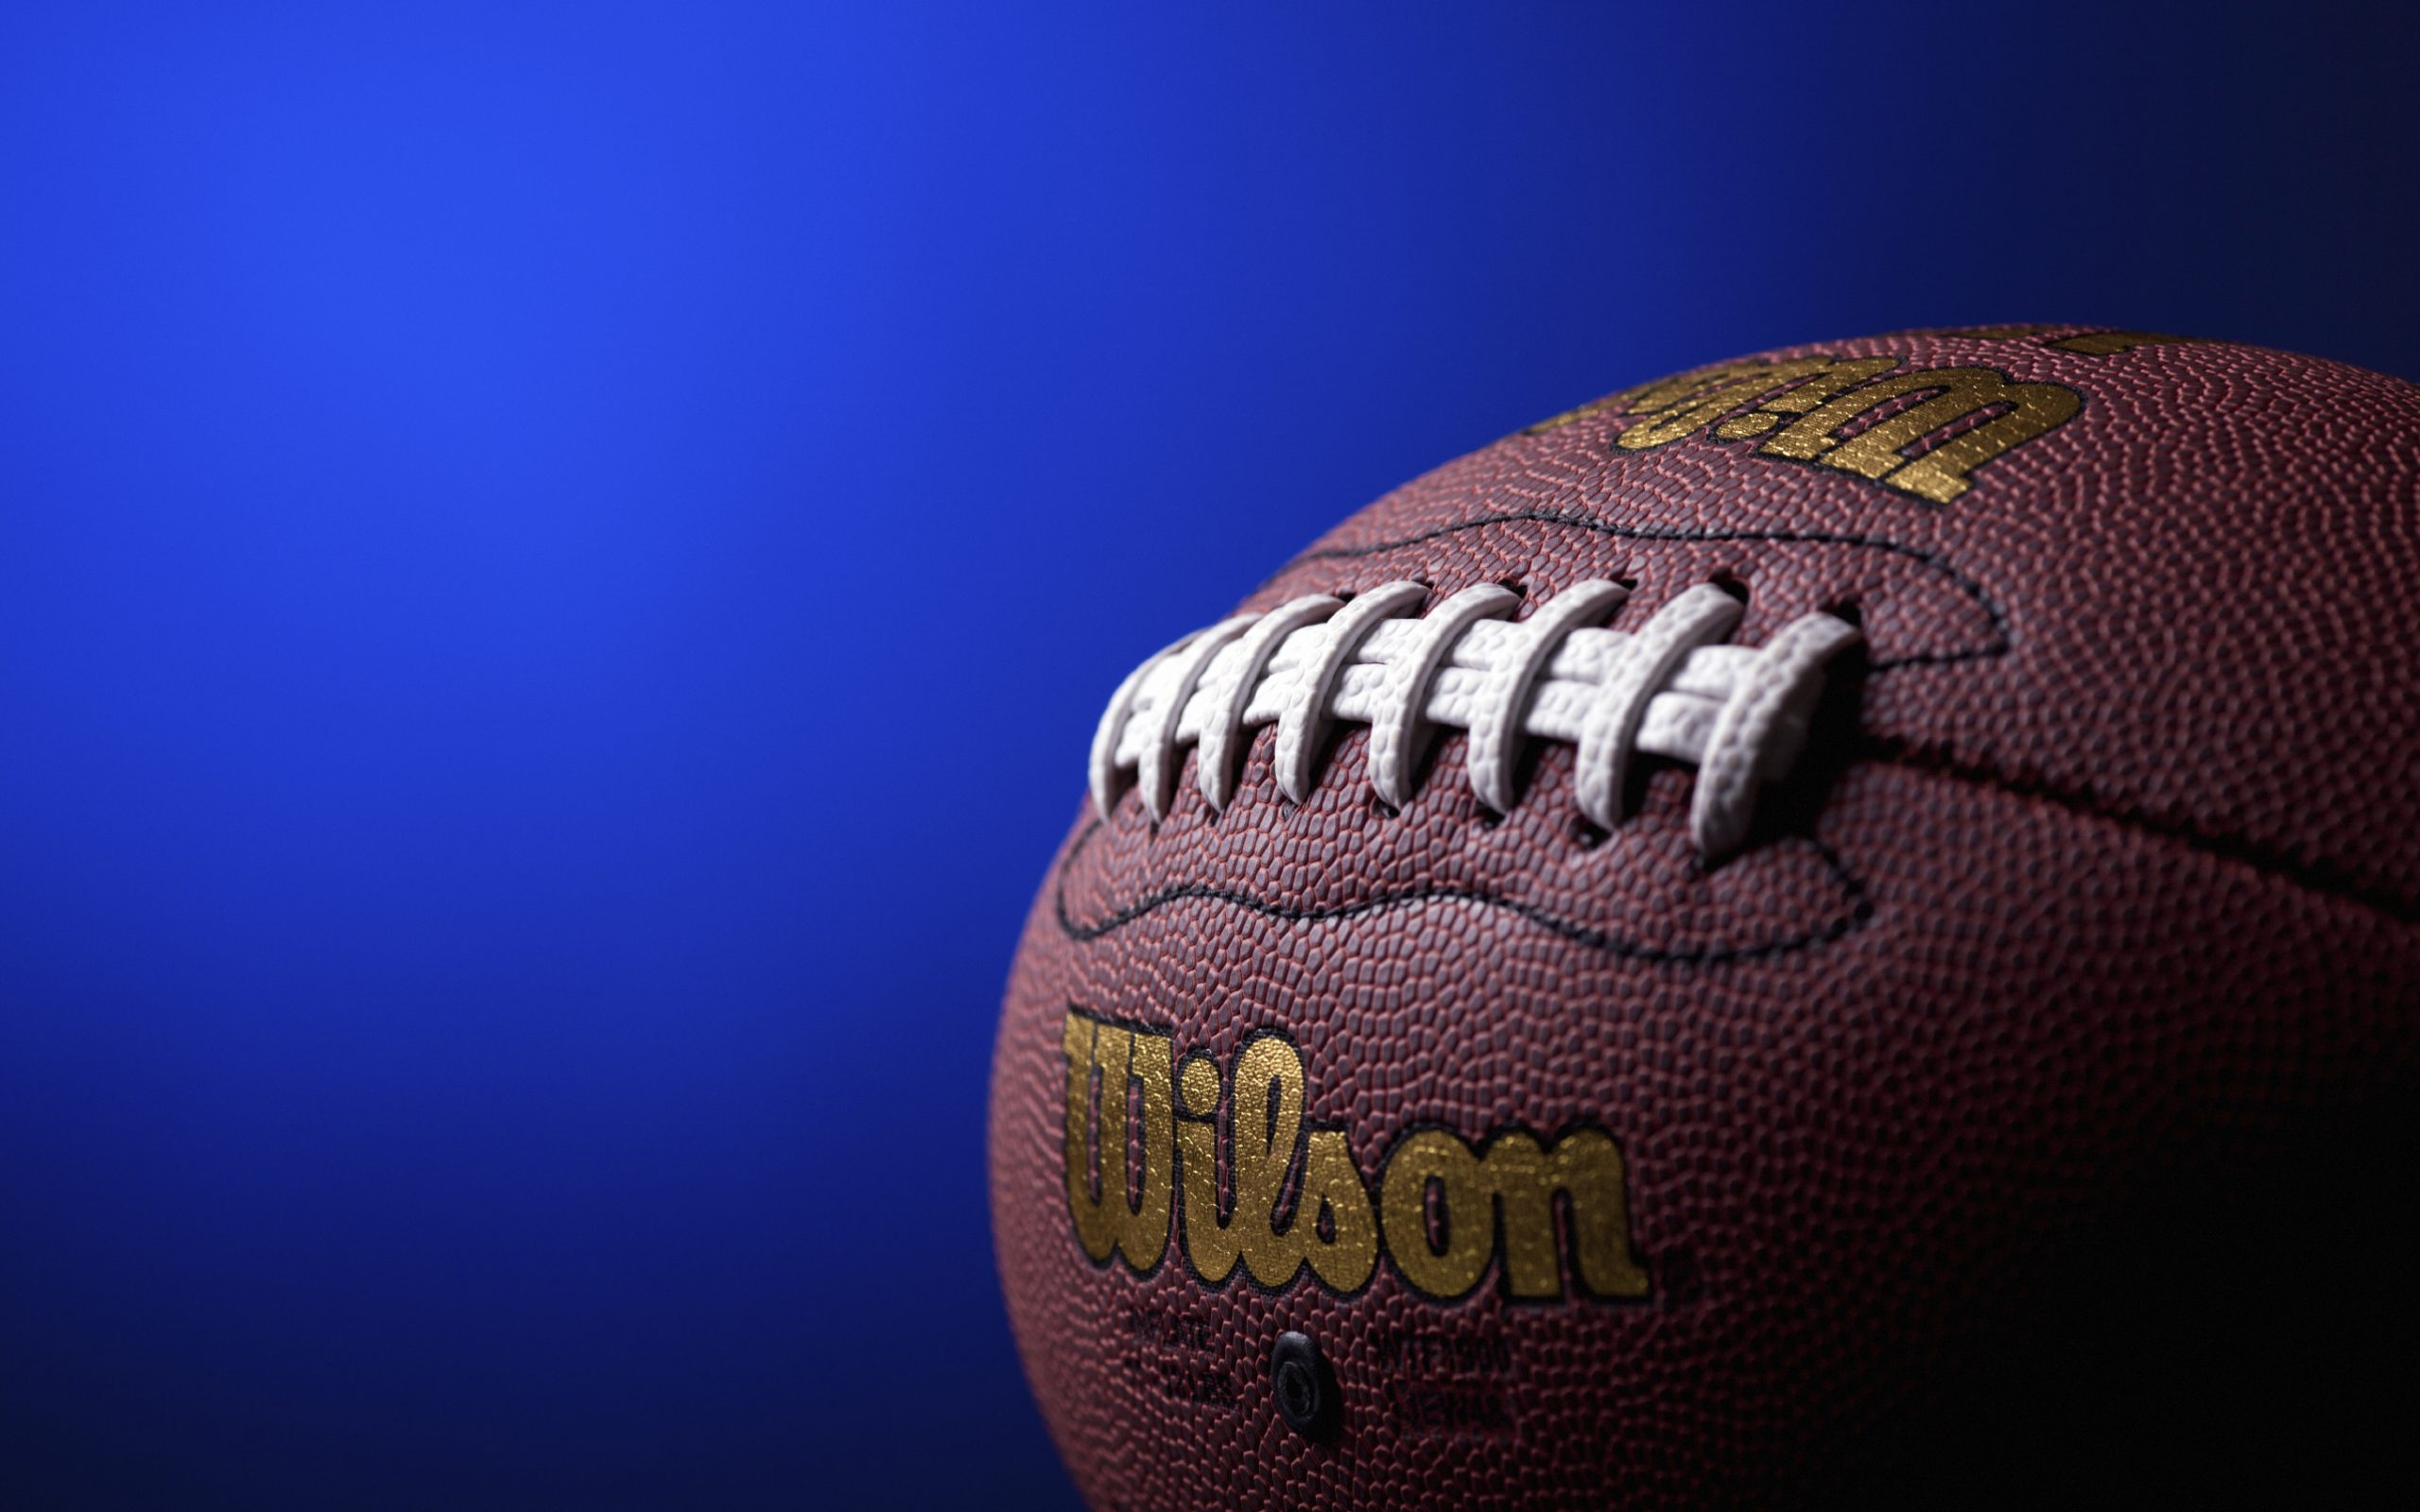 Professional ball for American football